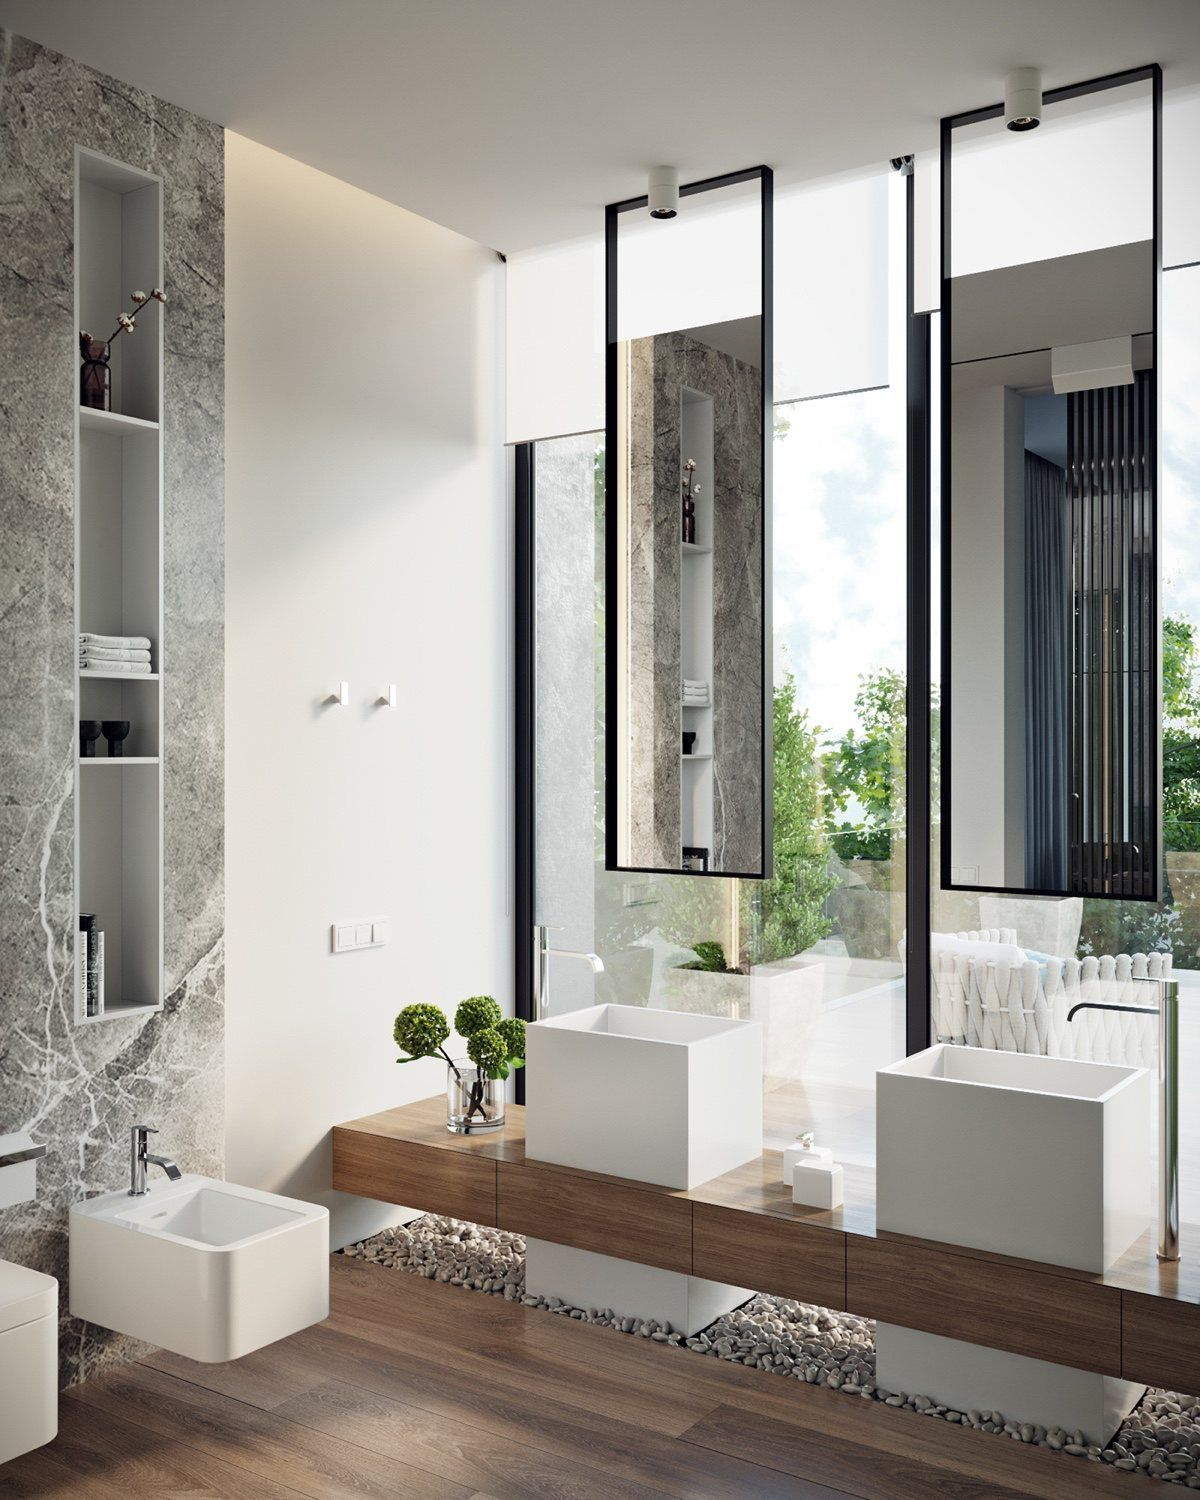 Salle De Bain Beige Meuble Taupe ~ a modern residence with simple details outside of moscow bathrooms